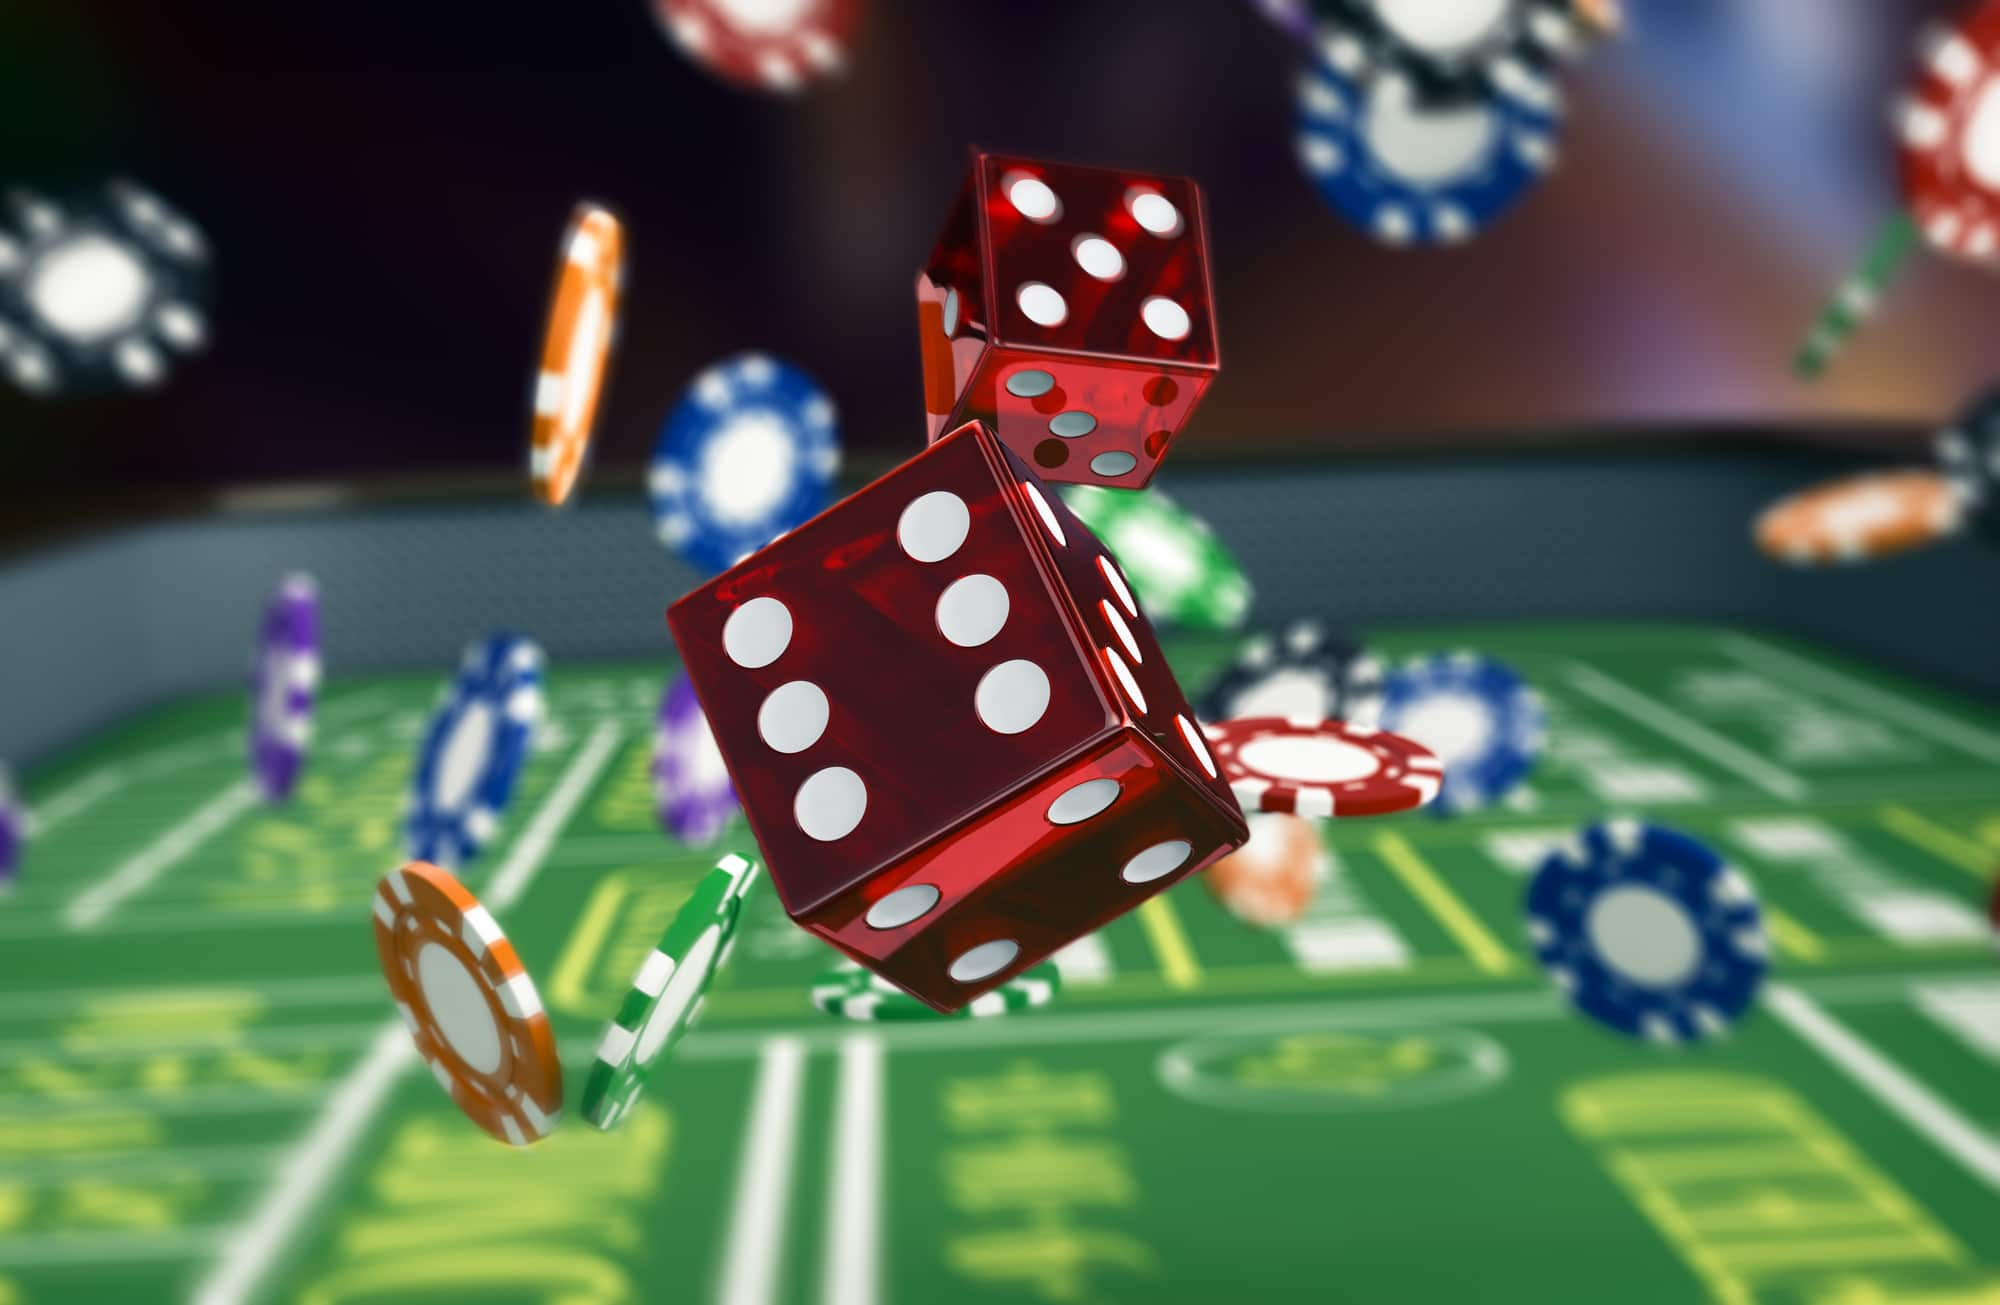 Top 25 Gambling Addiction Blogs & Websites For Gambling Addicts in 2019